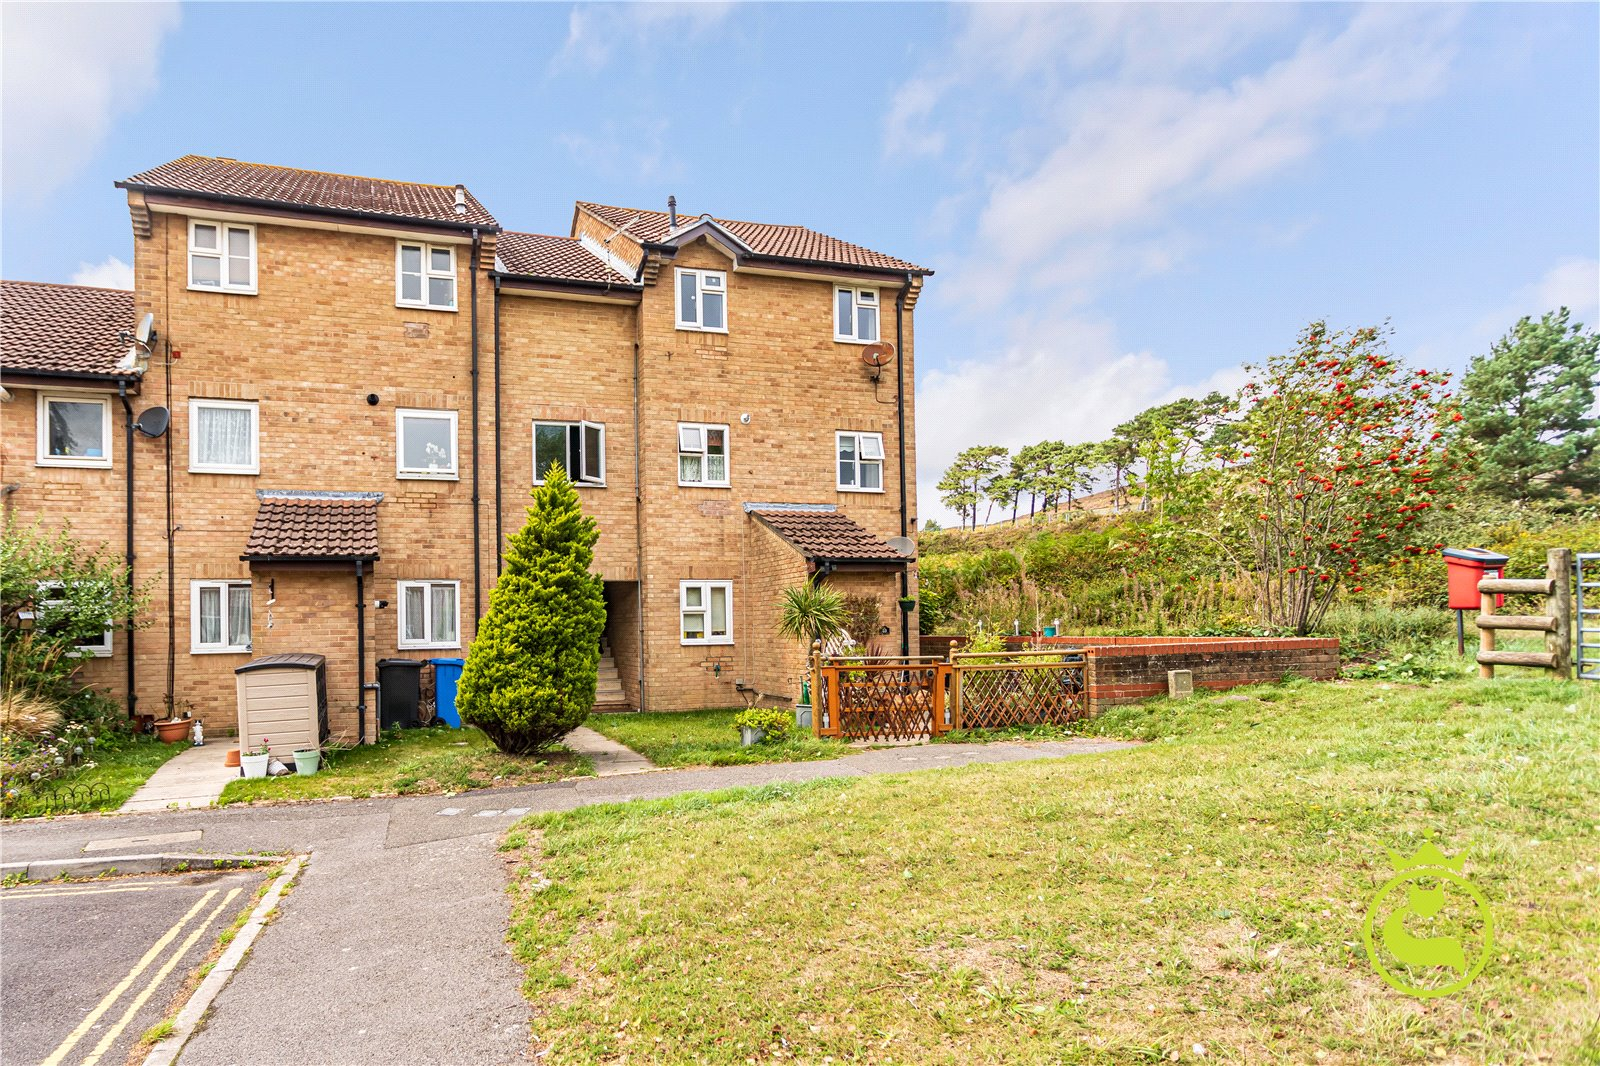 1 bed apartment for sale in Sydling Close, Canford Heath, BH17